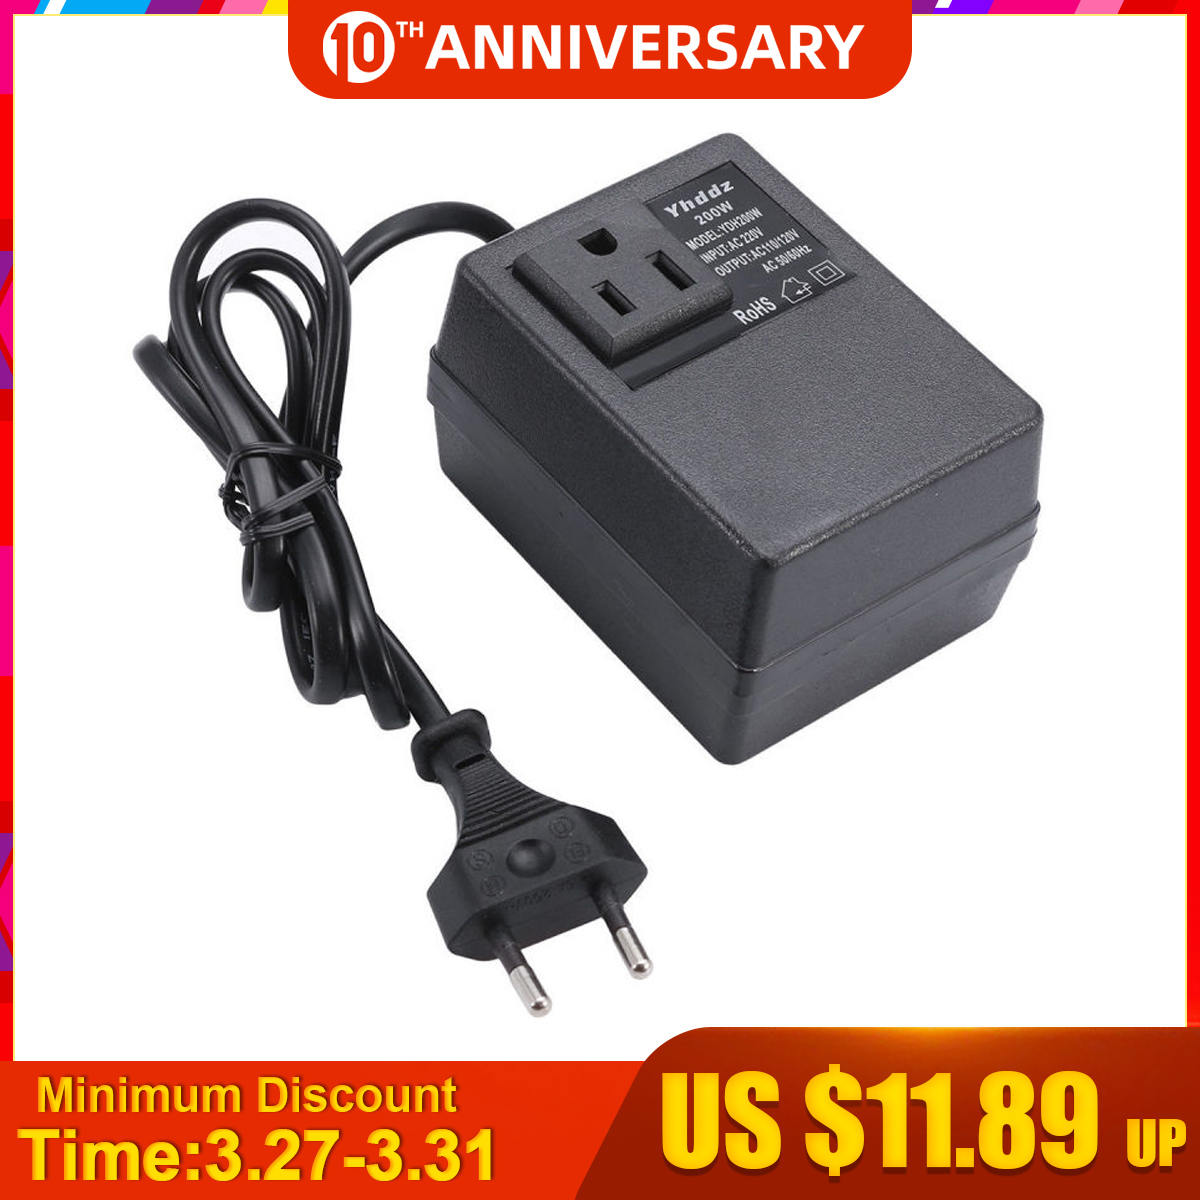 NEW <font><b>200W</b></font> Voltage Converter Transformer <font><b>220V</b></font> <font><b>To</b></font> <font><b>110V</b></font> Step Down Travel EU Plug Voltage Transformer Converter image